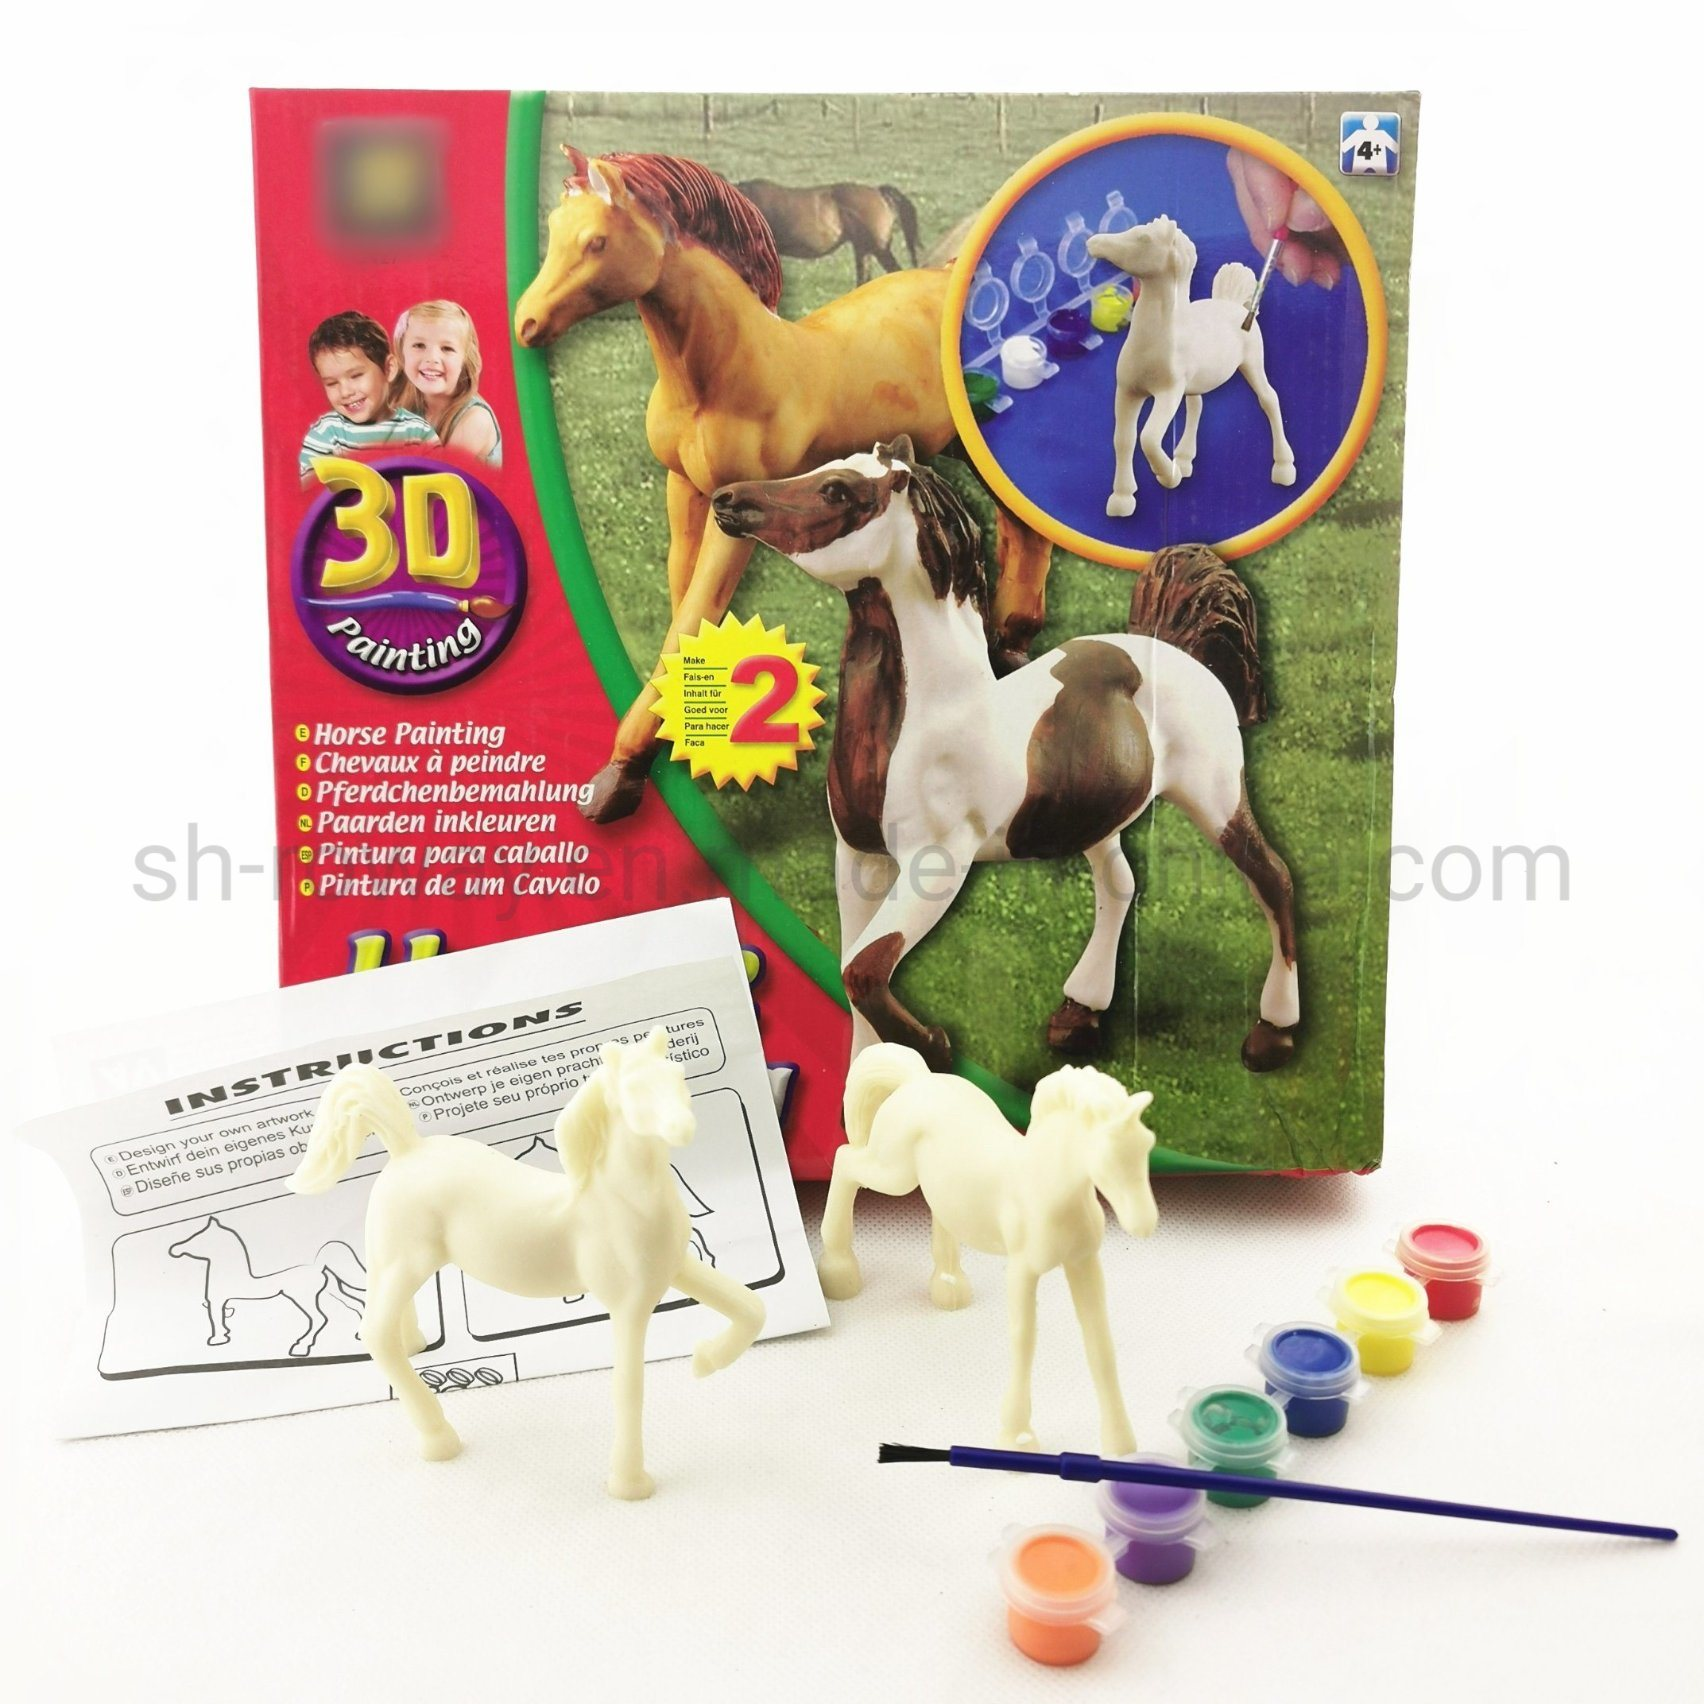 China Horse Painting Kids Diy Creative Painting Plastic Model Toy China Toy And Diy Toy Price